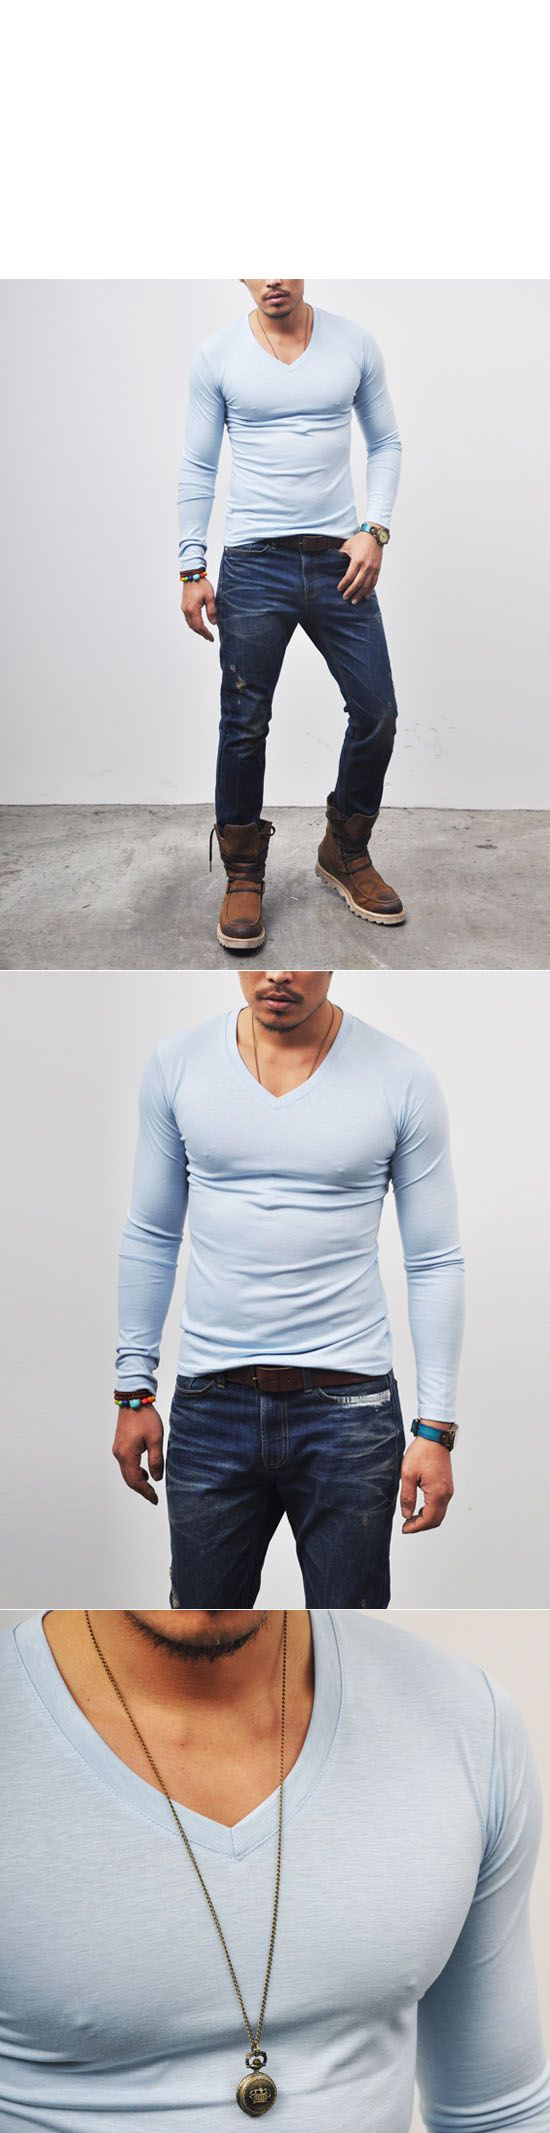 Tops :: Top Quality Snug Cut Silket V-neck-Tee 119 - Mens Fashion Clothing For An Attractive Guy Look